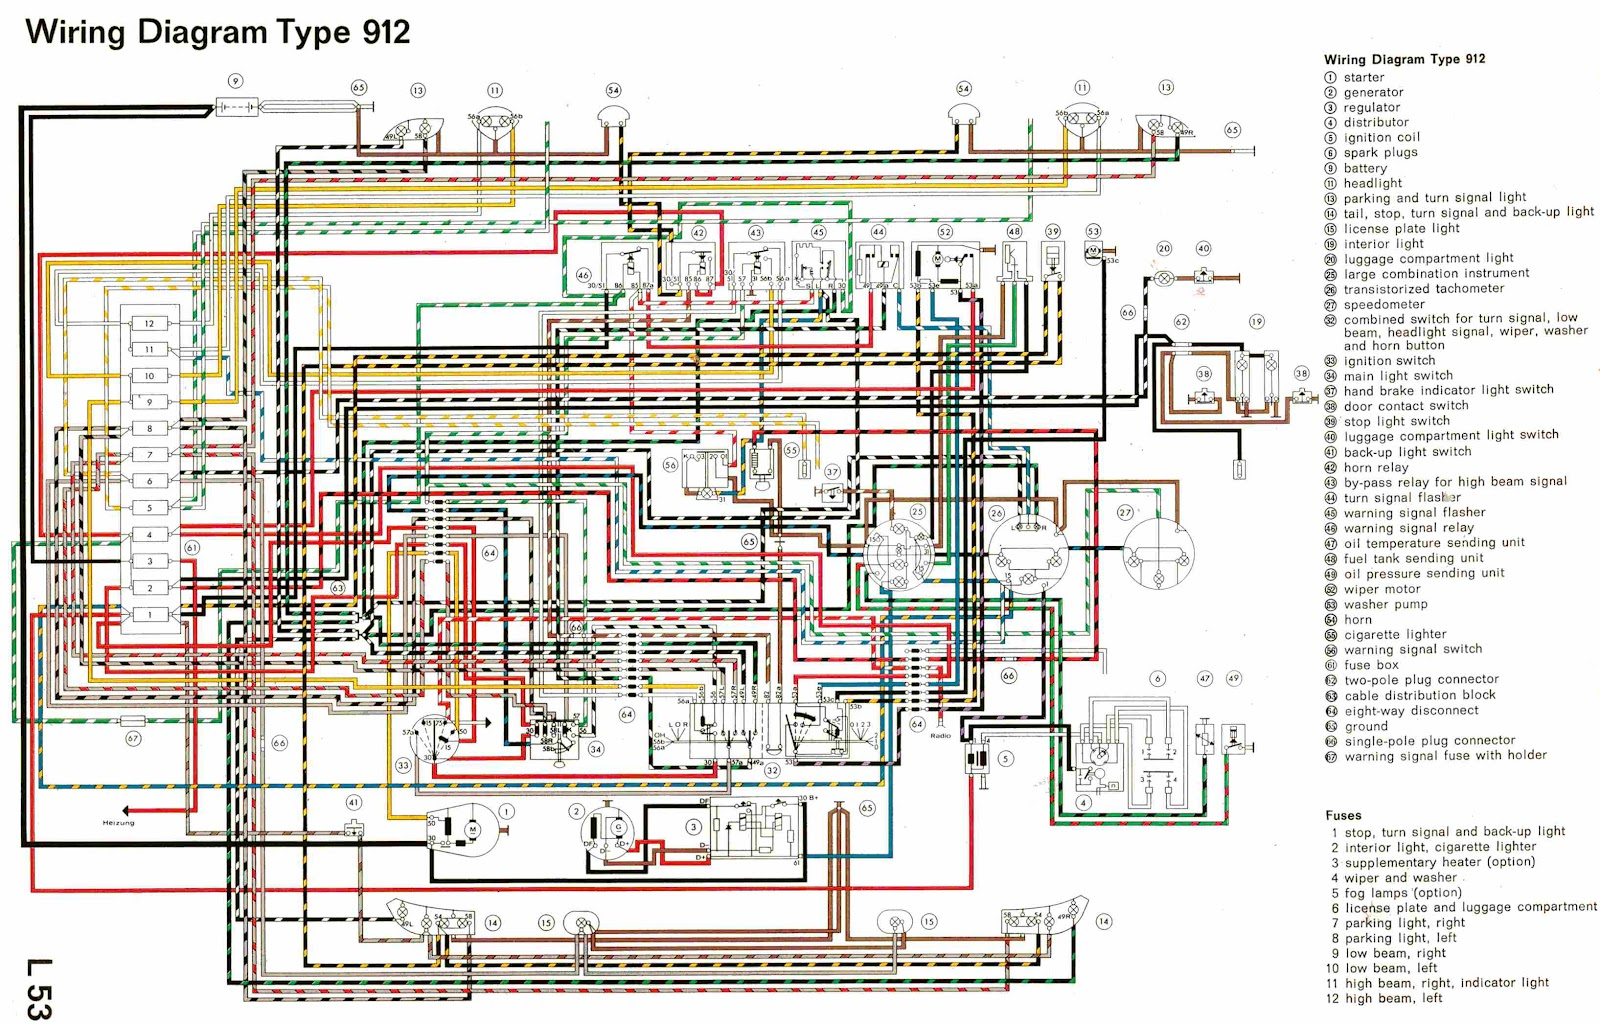 vw golf 3 wiring diagram images bmw z4 fuse box diagram on volkswagen golf engine diagram